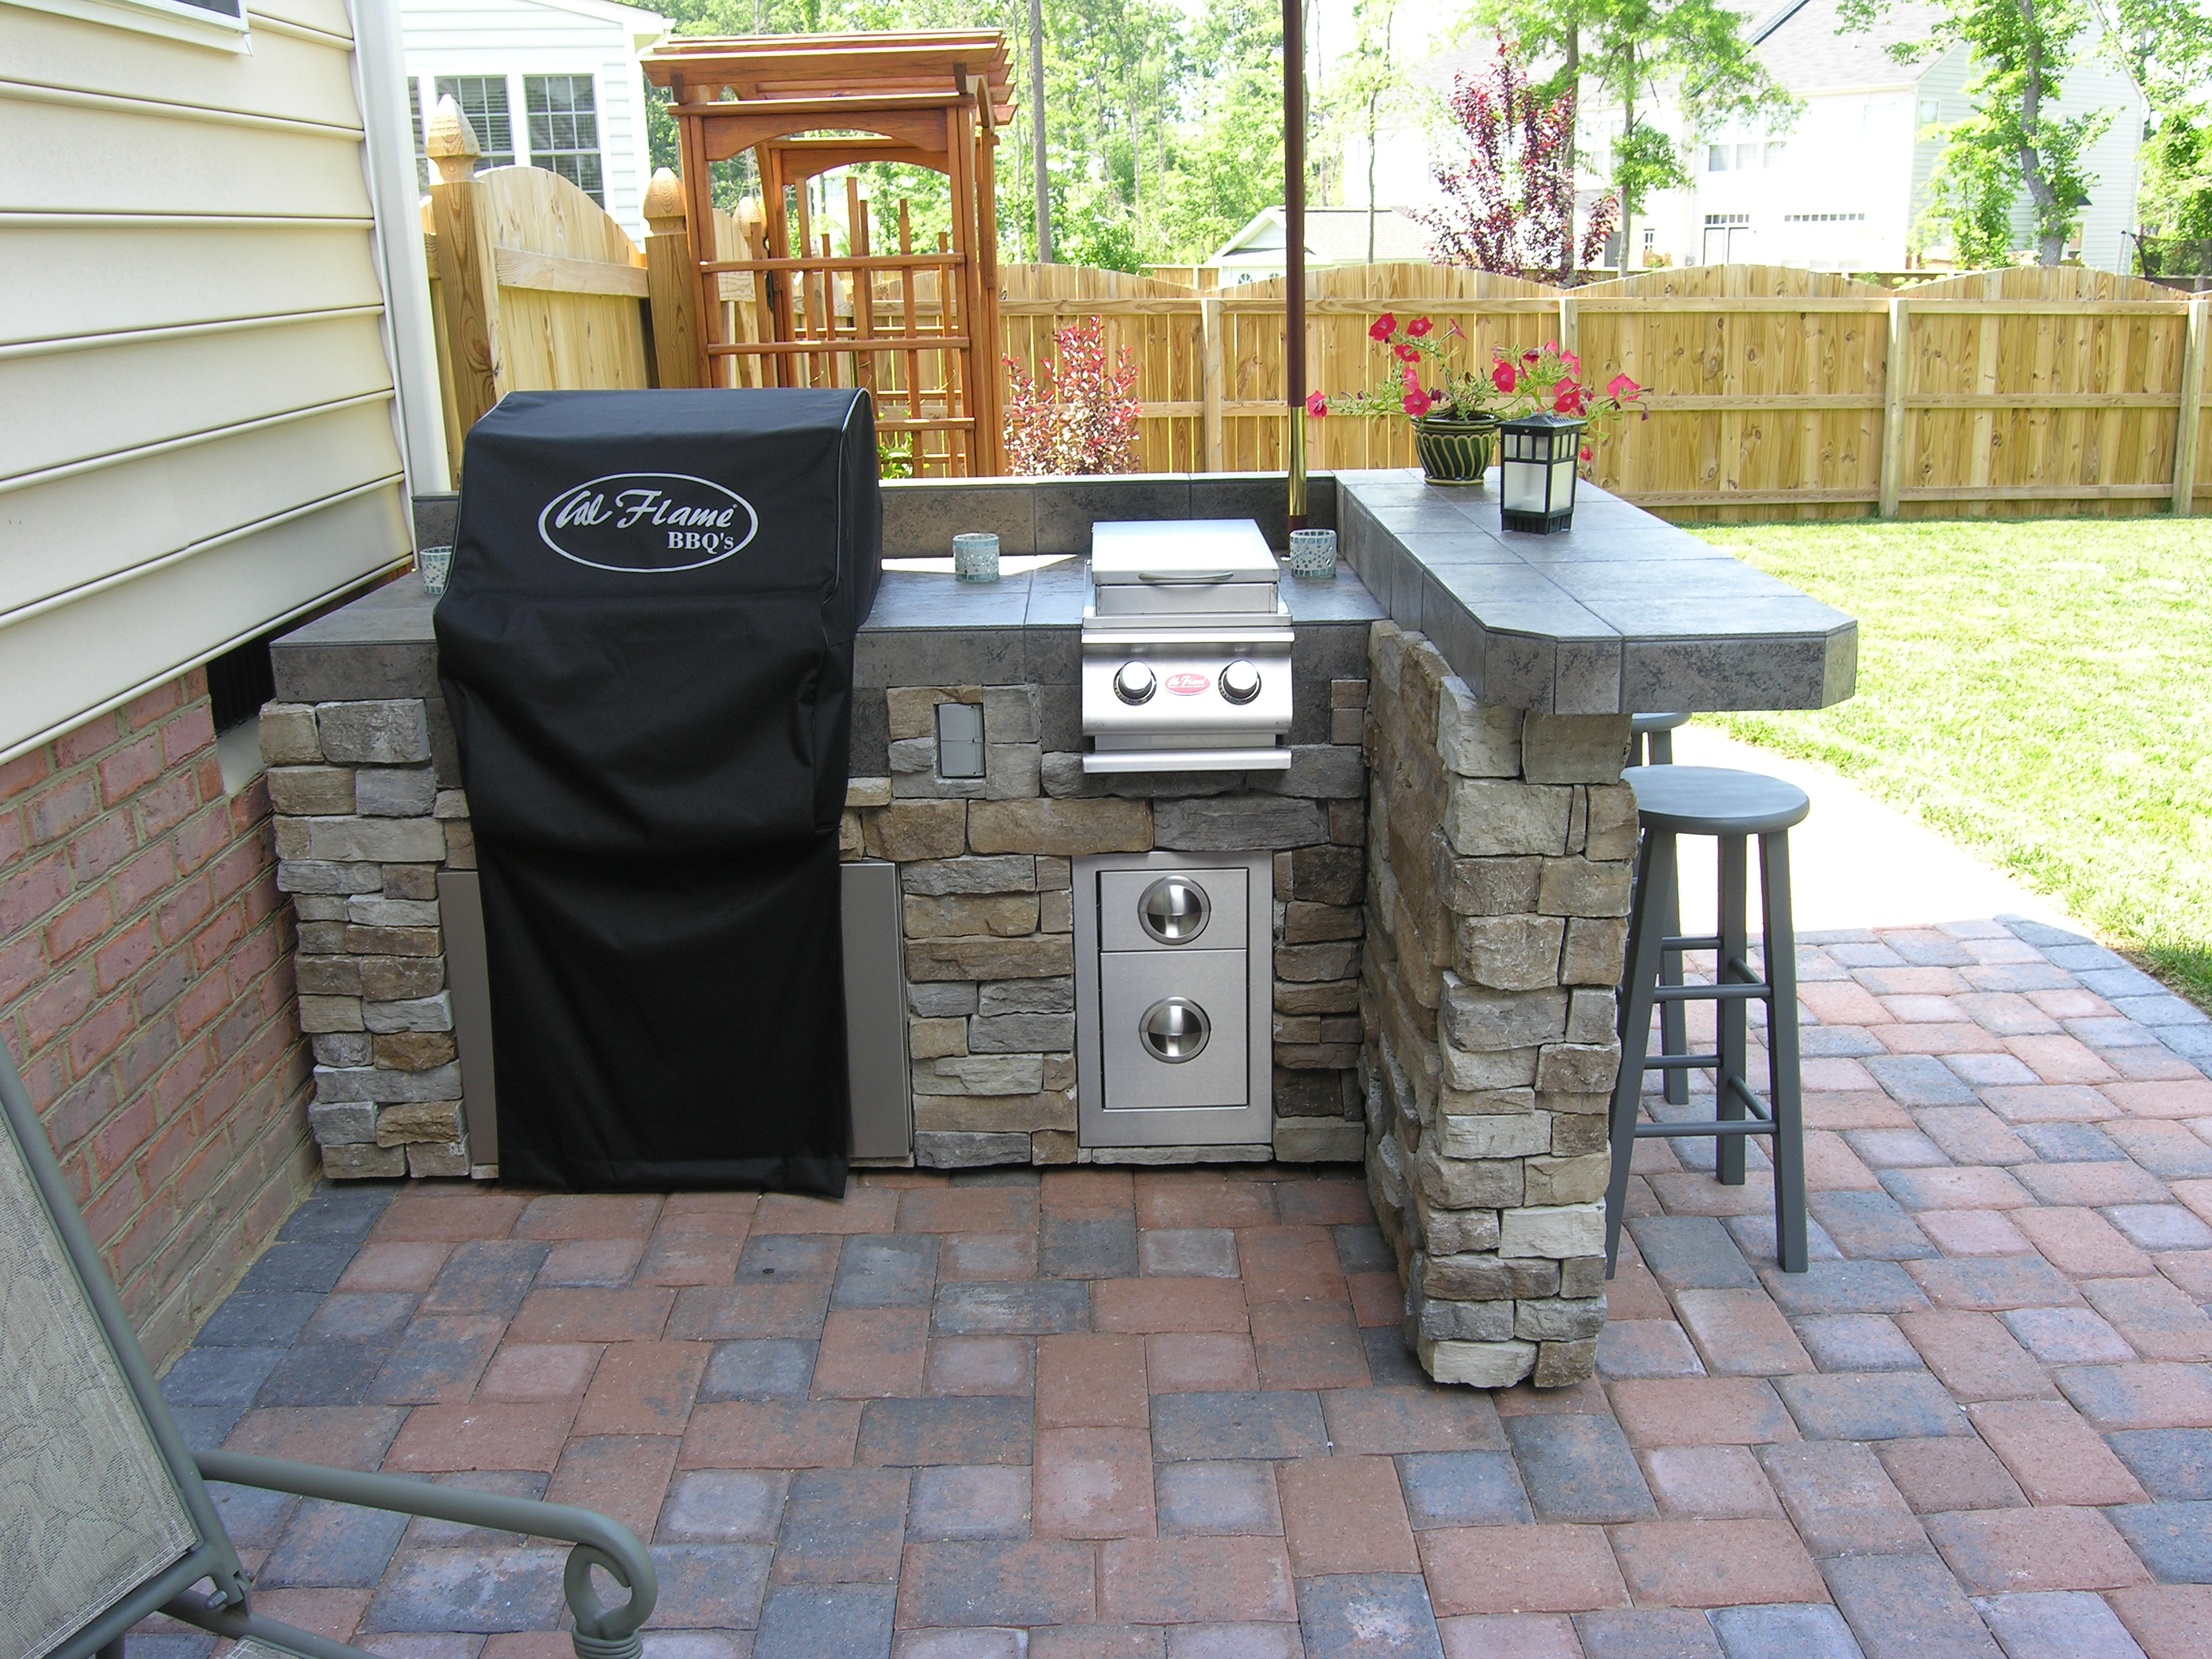 25 Best Ideas About Patio Grill On Pinterest Outdoor Kitchens Outdoor Grill Area And Outdoor Grill Space